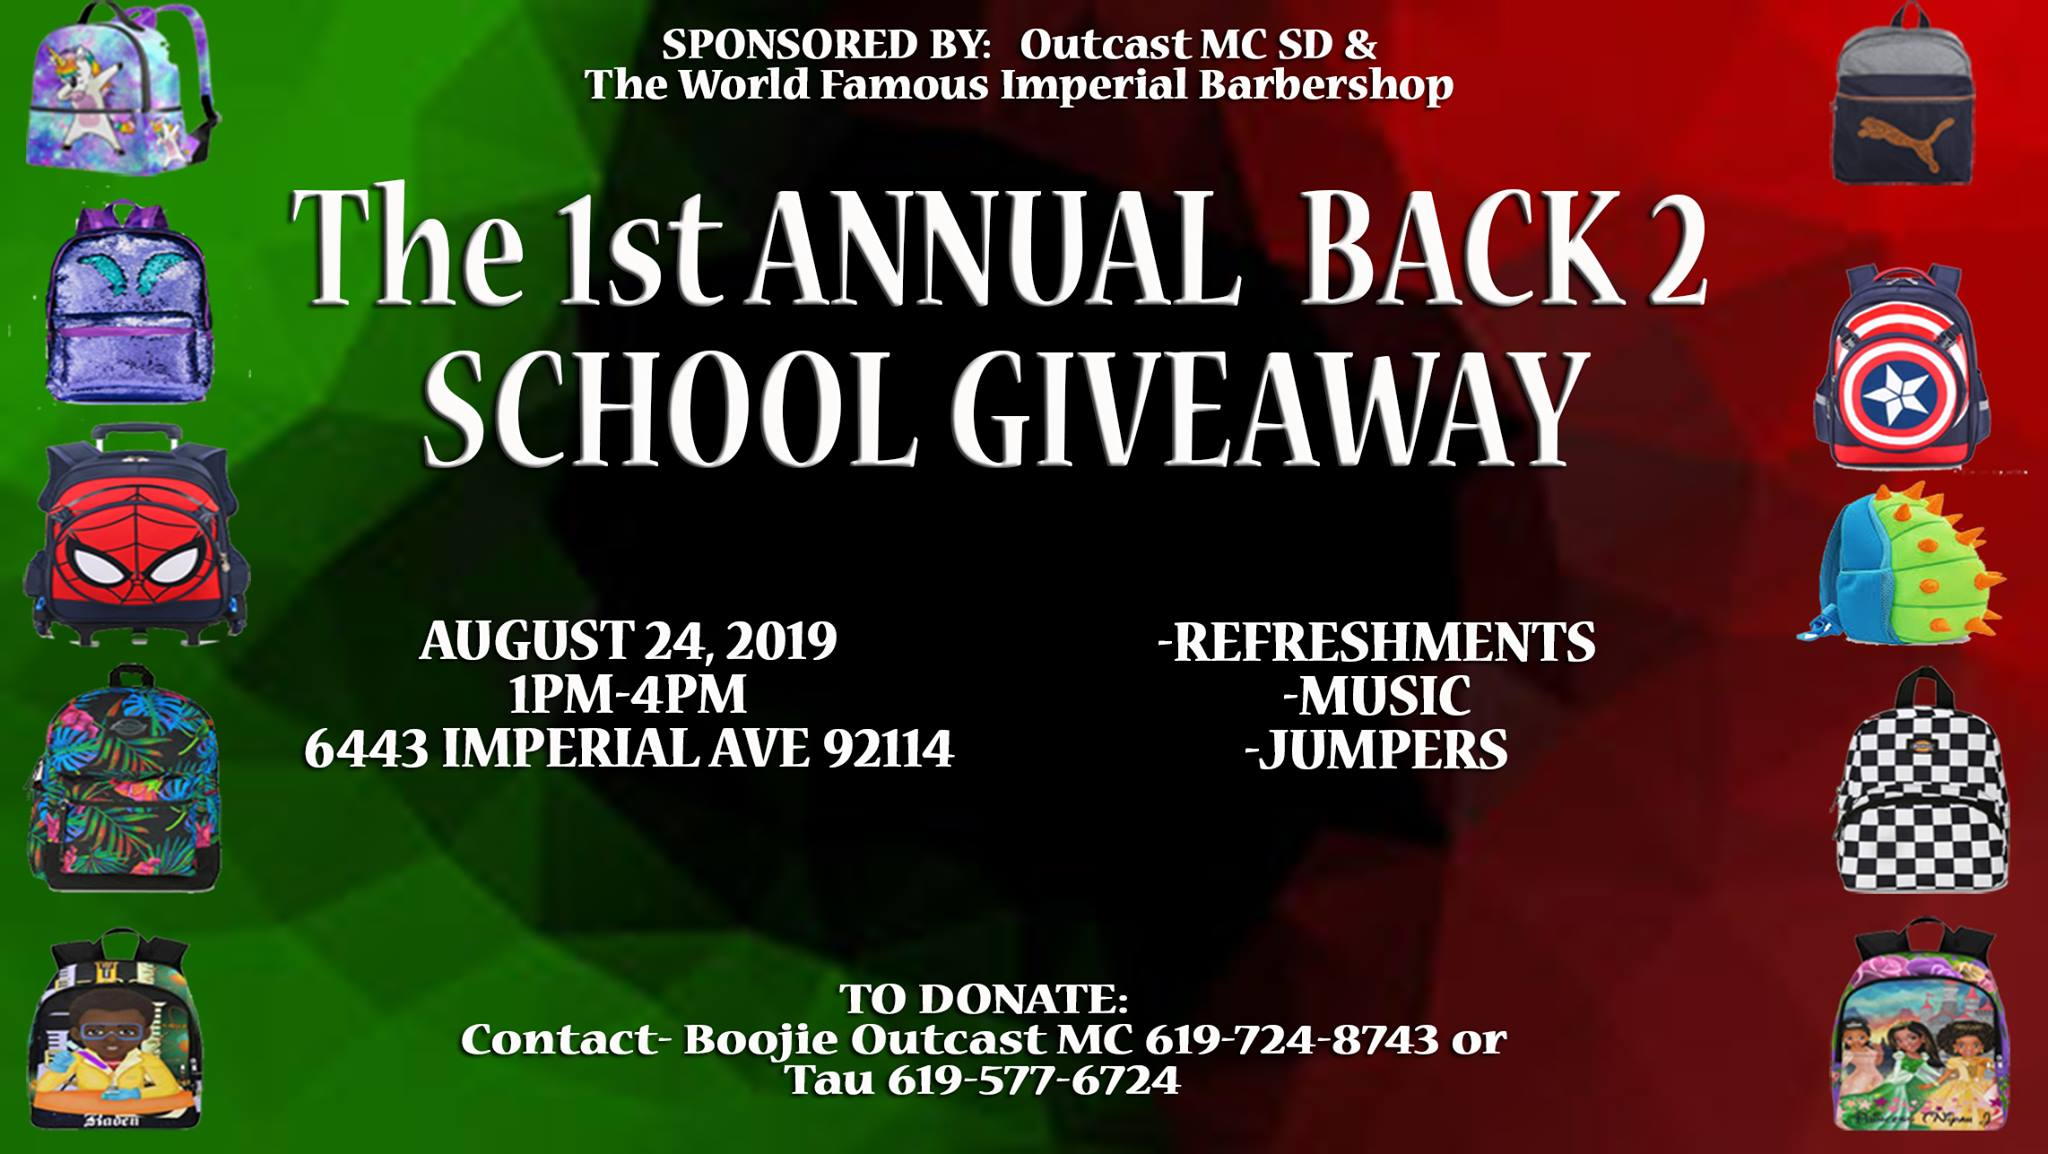 The 1st Annual Back 2 School Giveaway @ The World Famous Imperial Barbershop SD